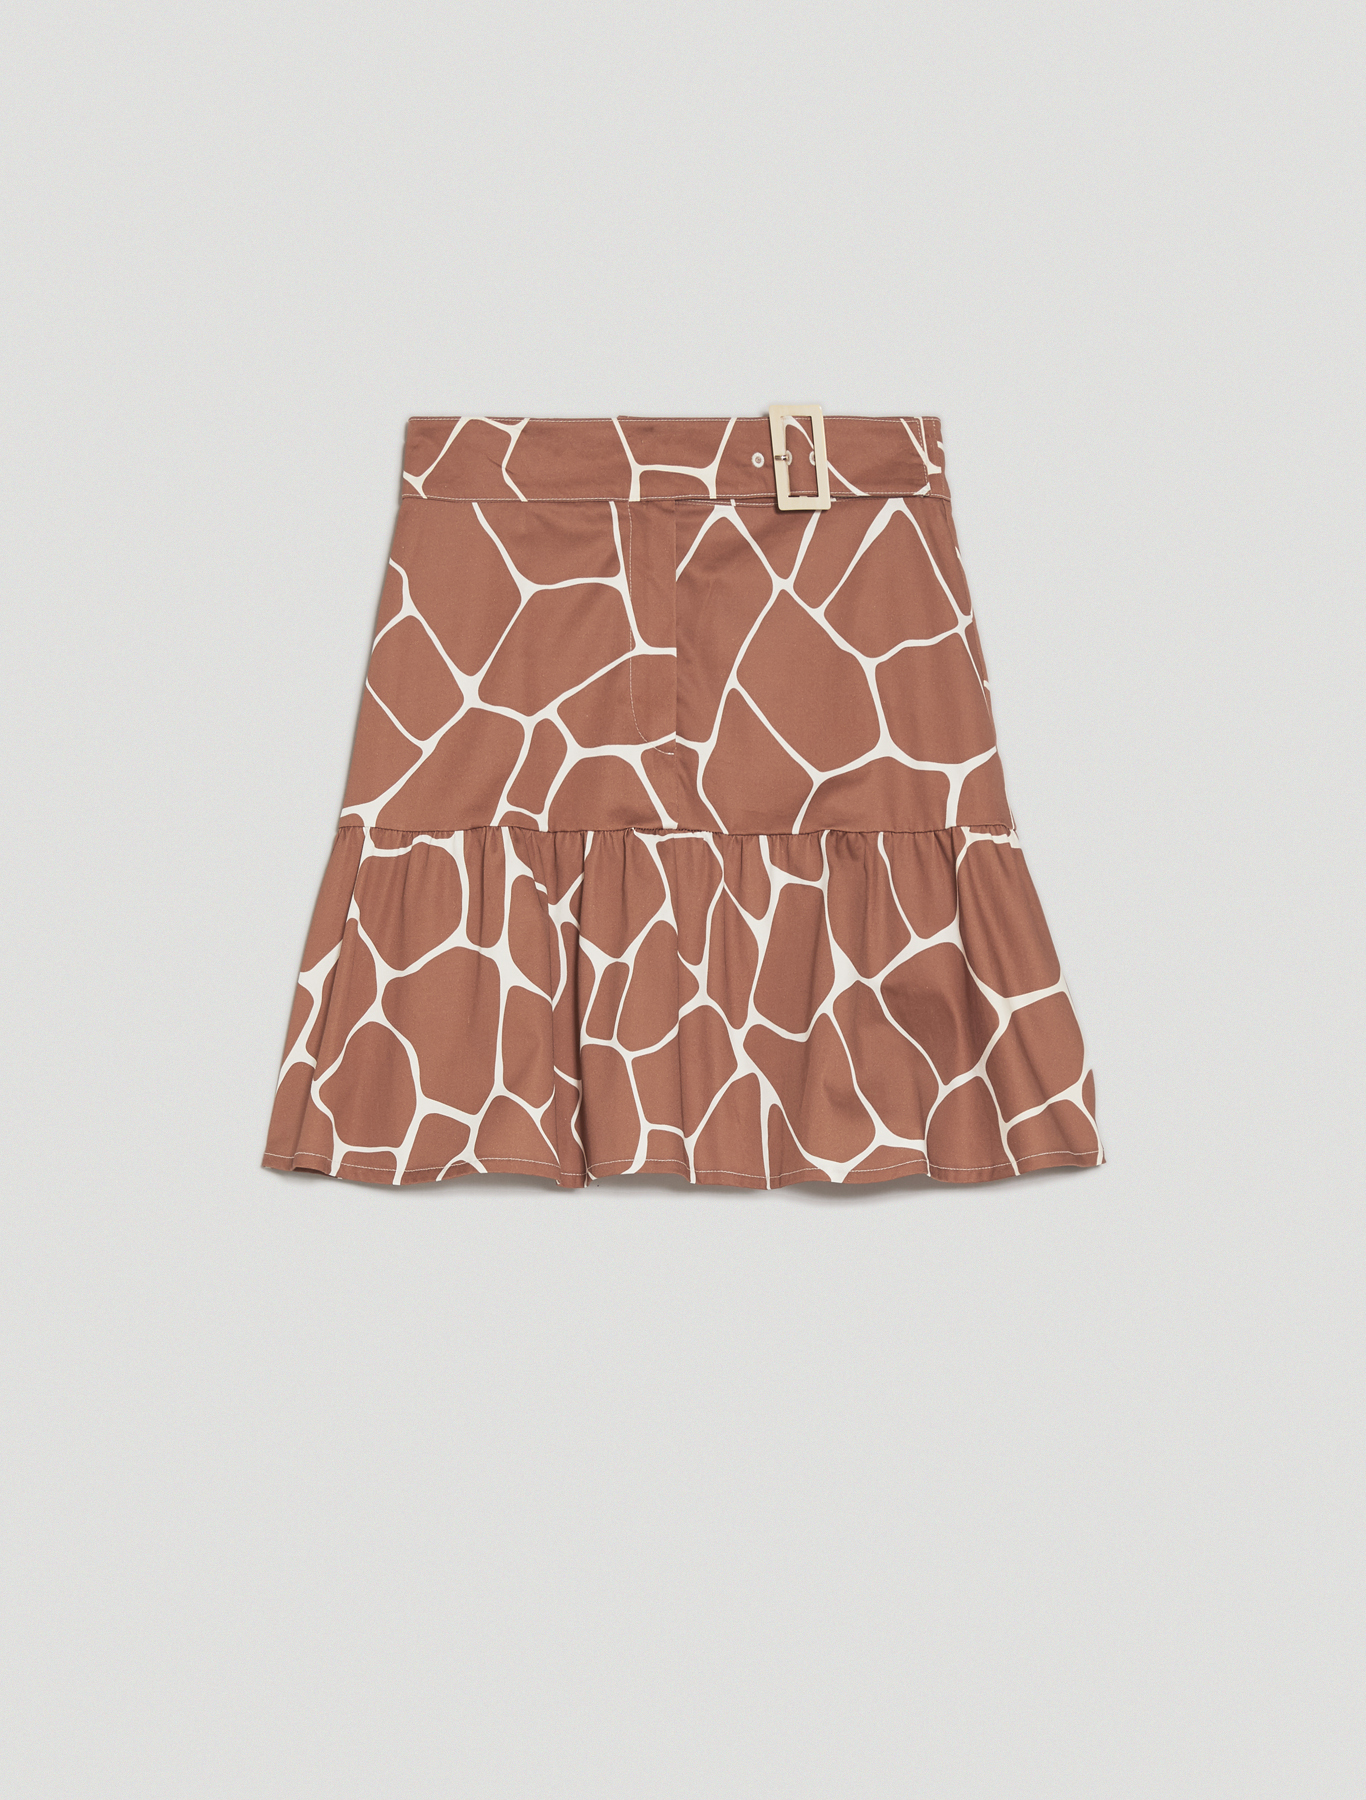 Cotton satin skirt - dark brown - pennyblack